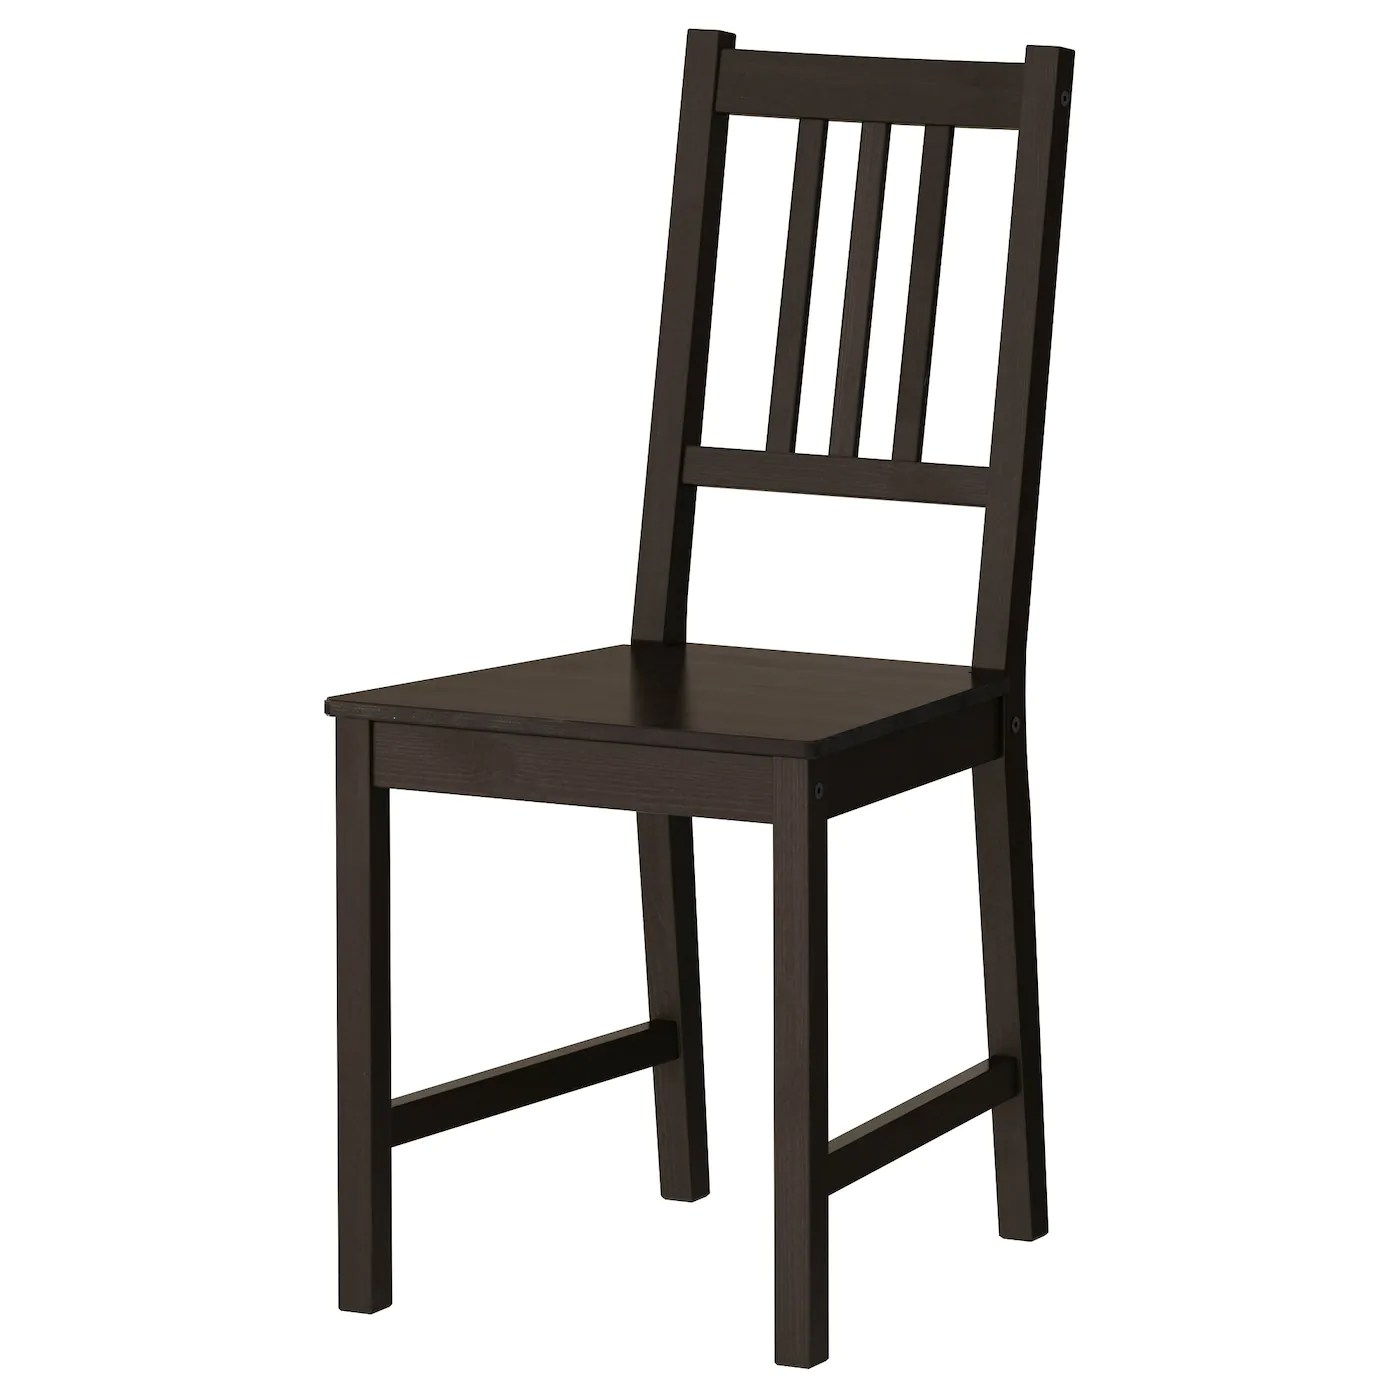 Ikea Black Chair Stefan Chair Brown Black Ikea